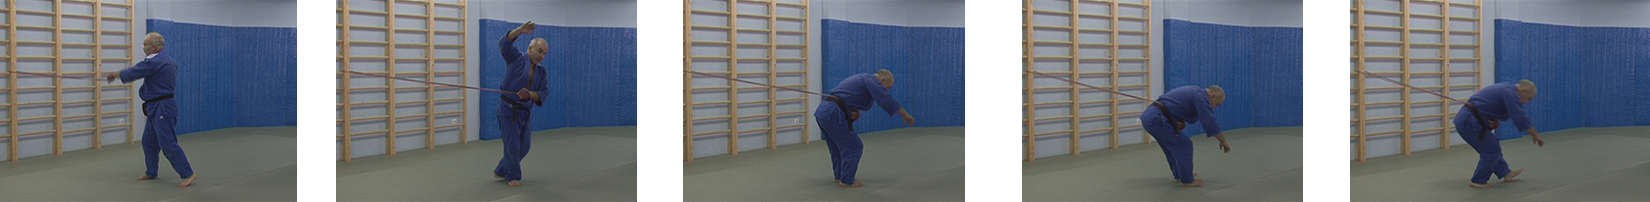 If the rubber is pulled at belt level, then the athlete bends and falls backwards. These photos show the wrong movement.